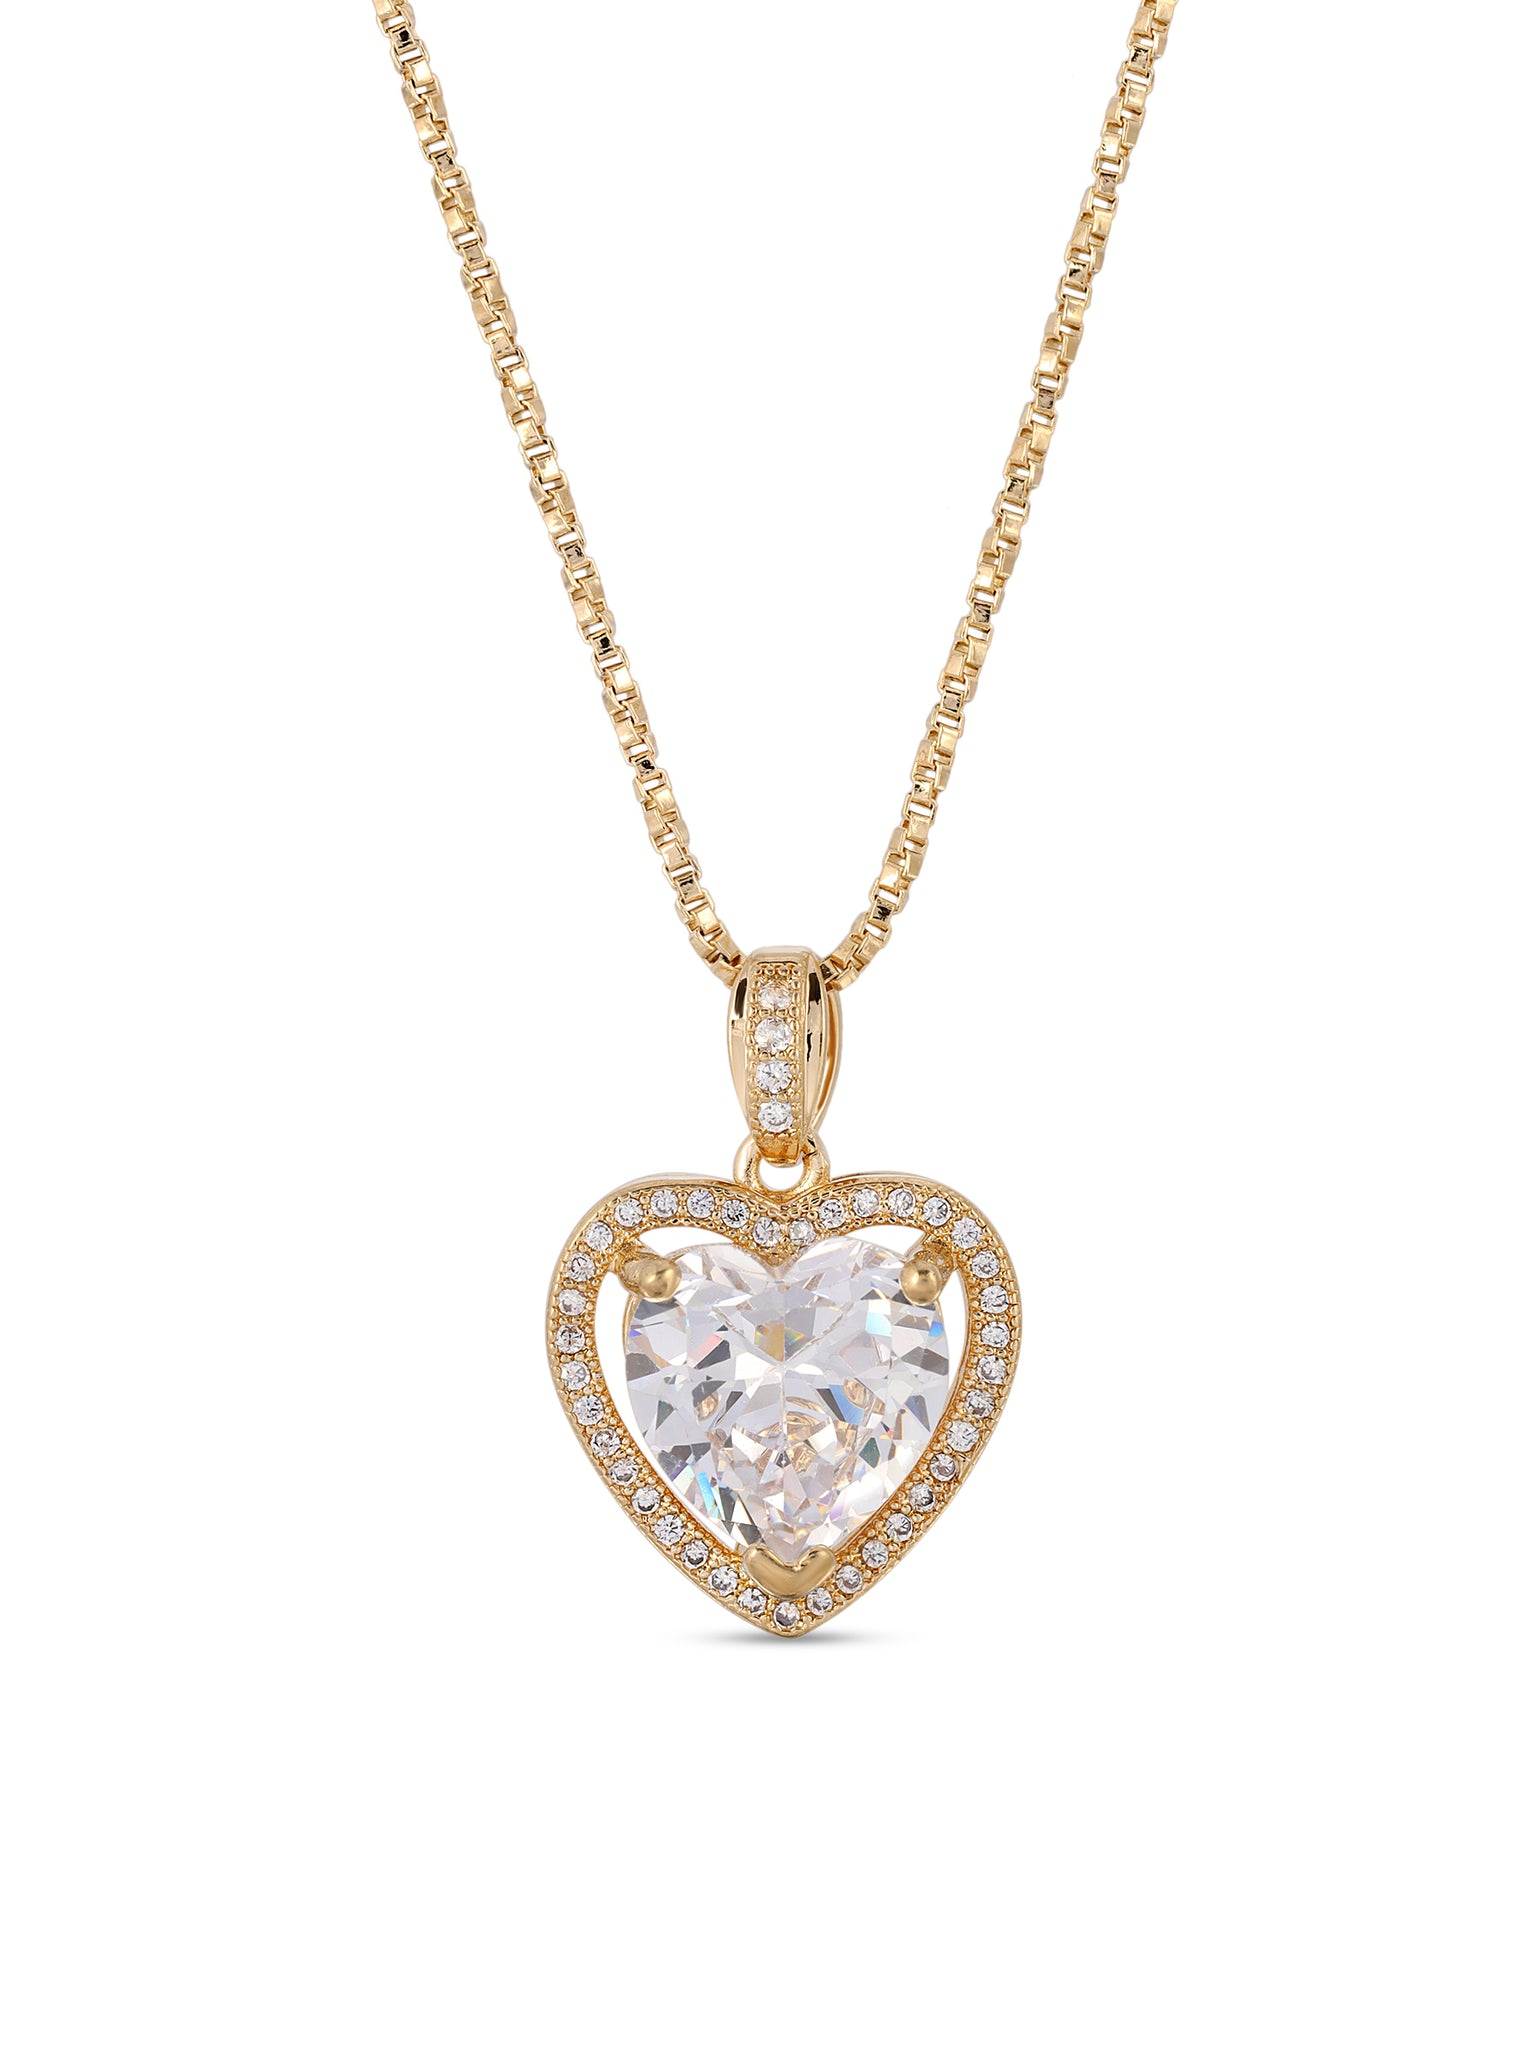 The Mini Heart Necklace - Crystal